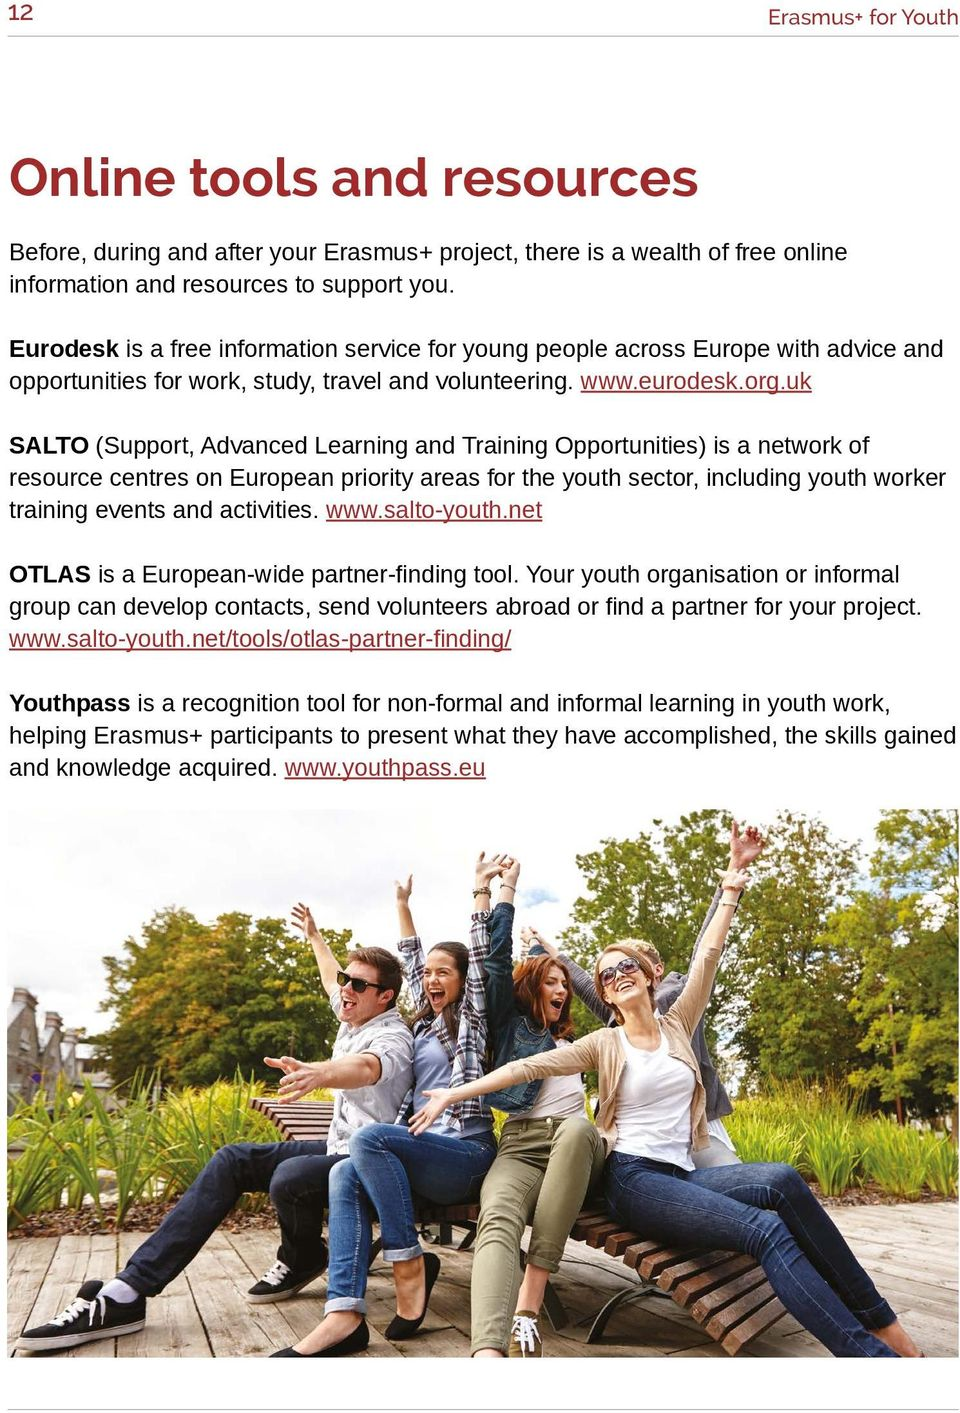 uk SALTO (Support, Advanced Learning and Training Opportunities) is a network of resource centres on European priority areas for the youth sector, including youth worker training events and